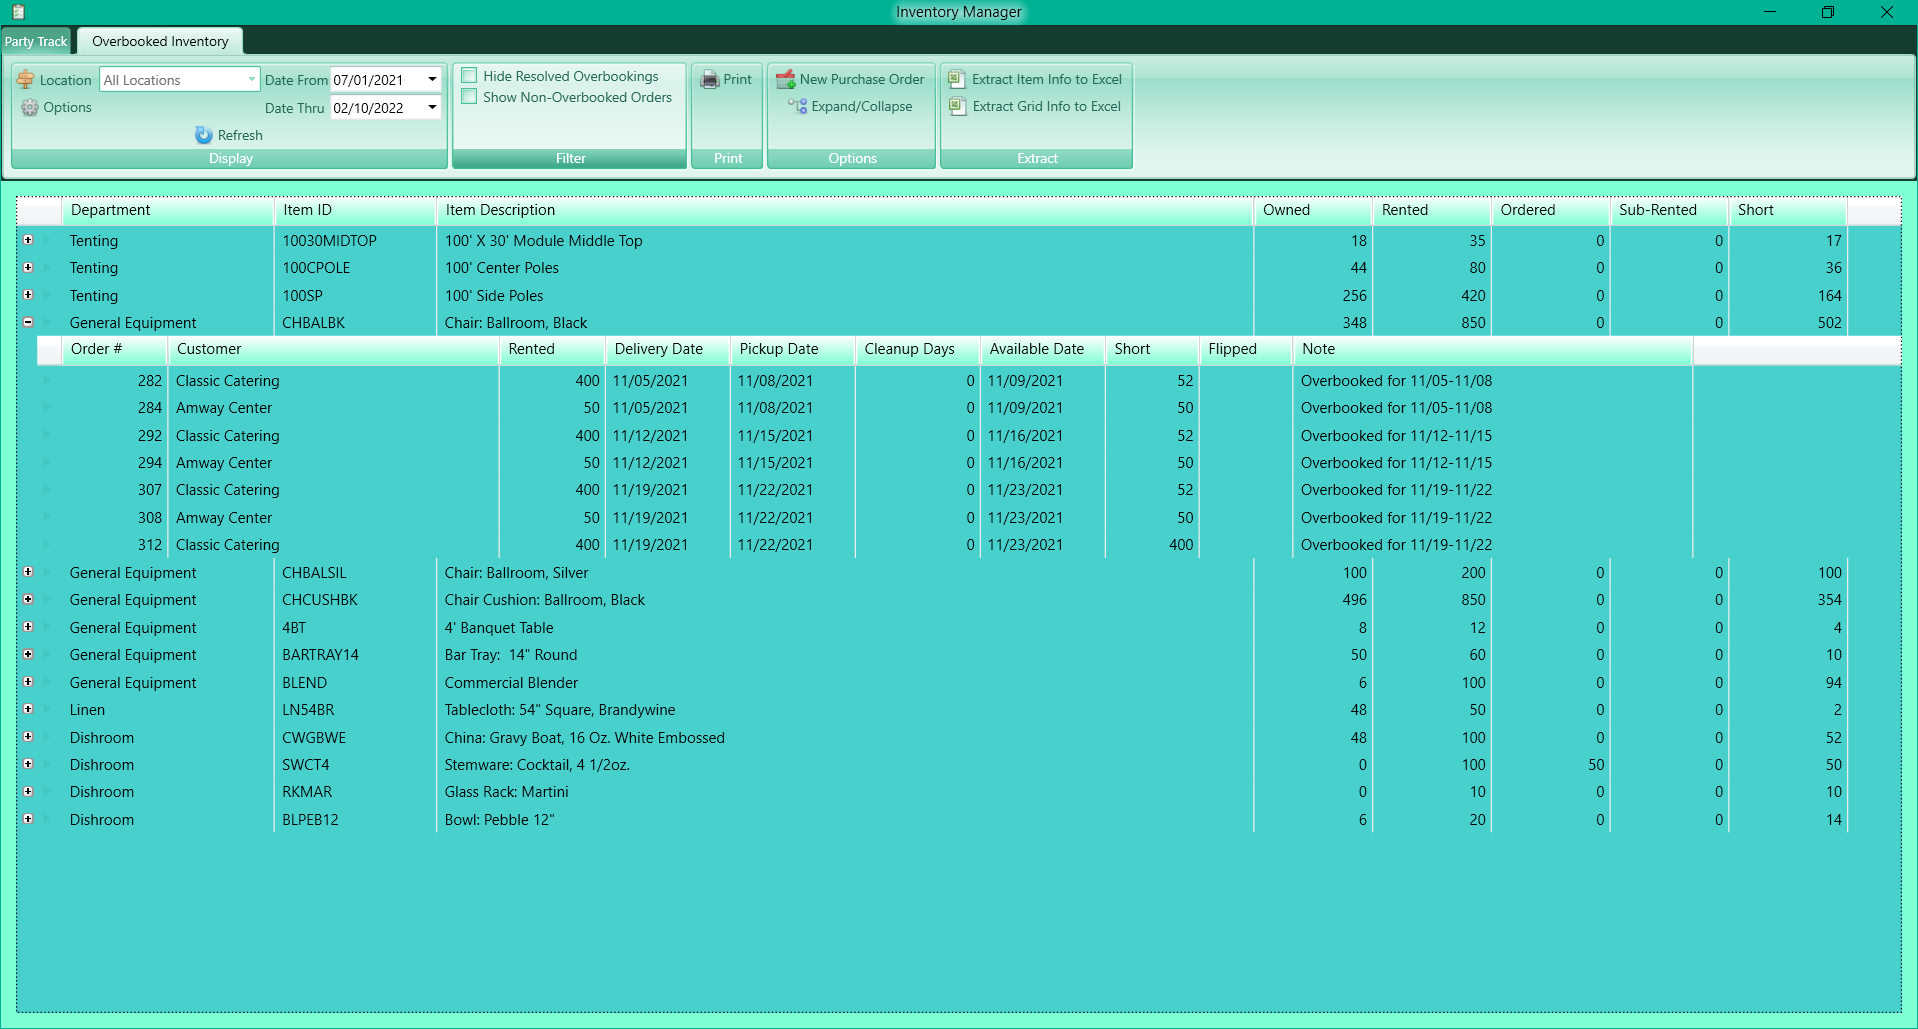 Easily locate all overbooked items and orders and resolve them from your inventory manager.